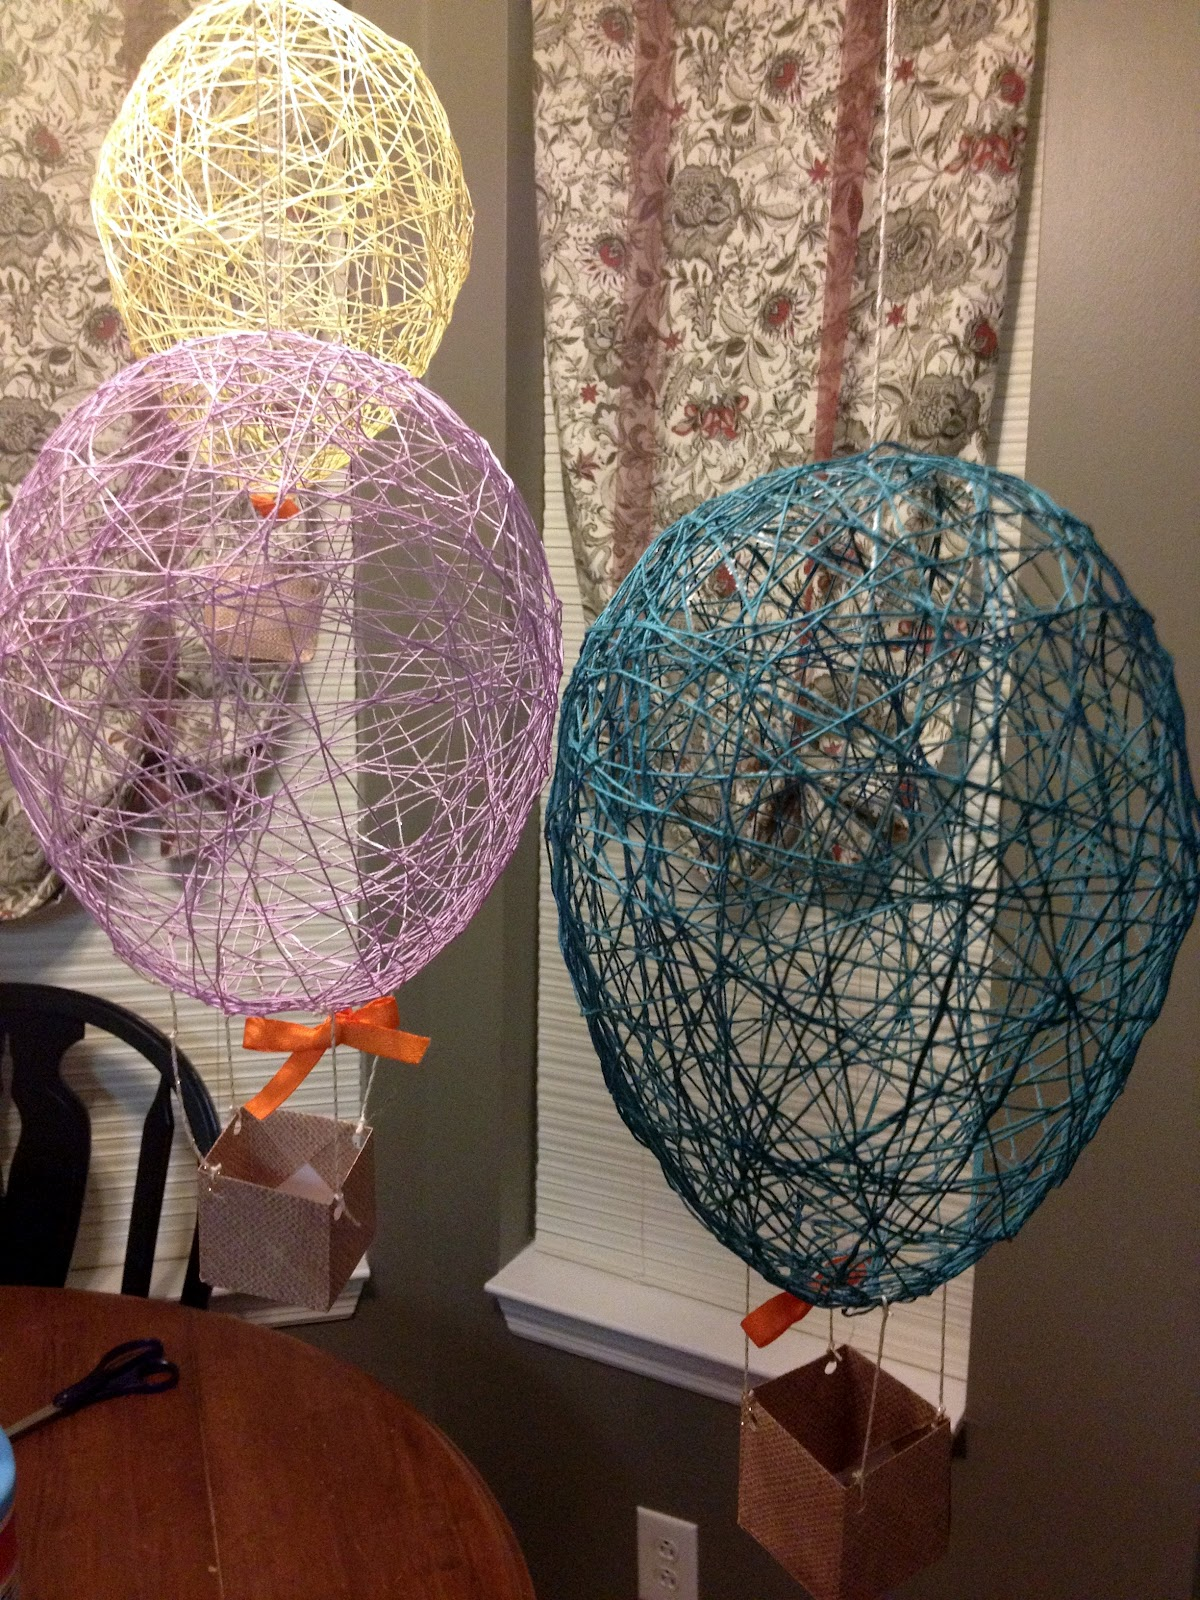 Twine Hot Air Balloons - Tattling to the Teacher